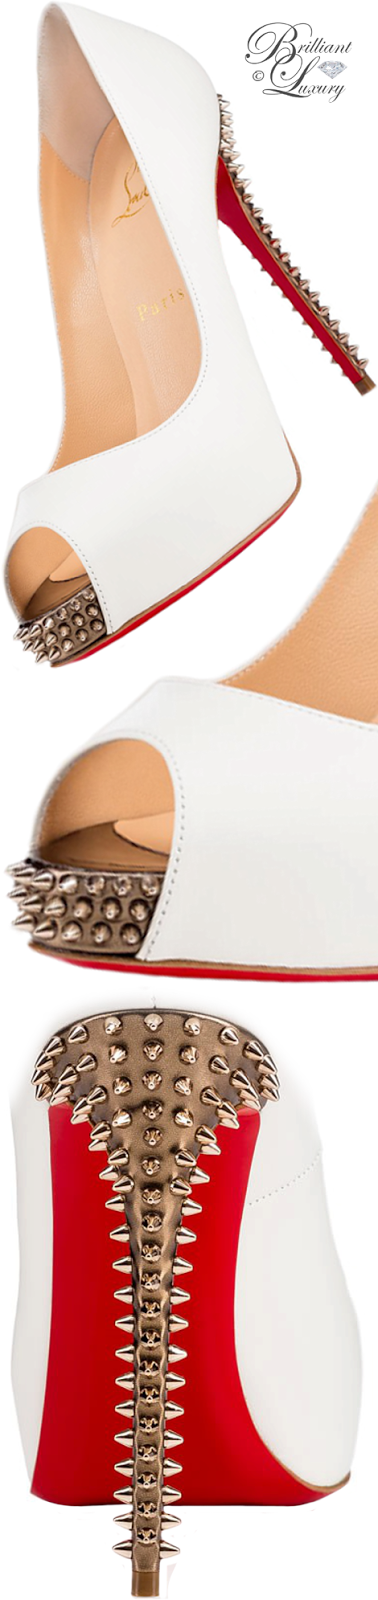 Brilliant Luxury ♦ Christian Louboutin New Very Prive Kid spikes peeptoe pump